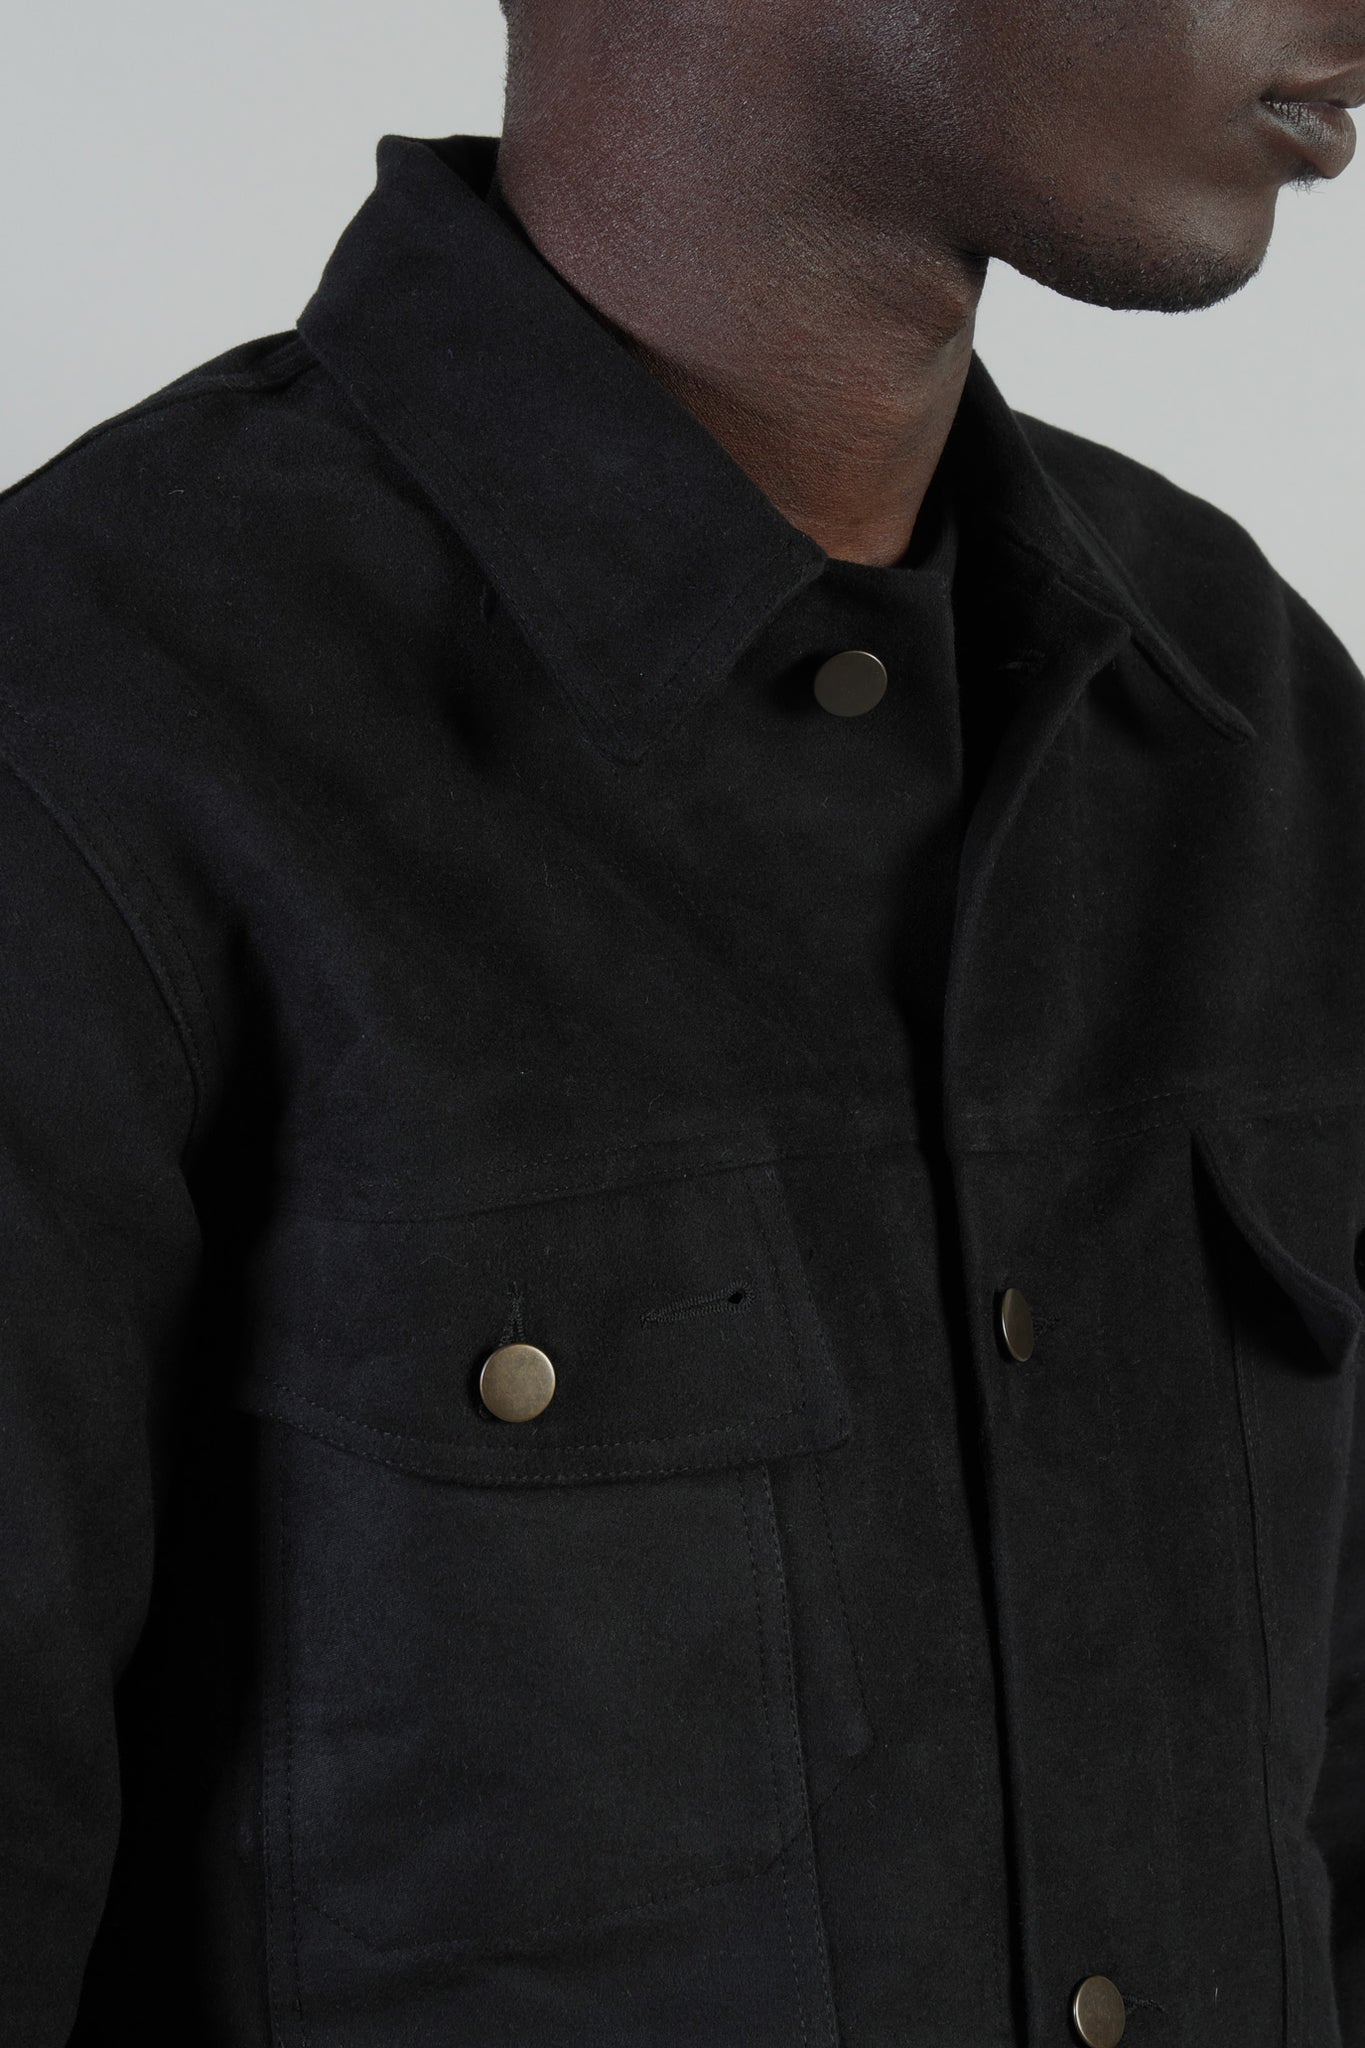 BUTTON-UP JACKET MOLESKINE BLACK